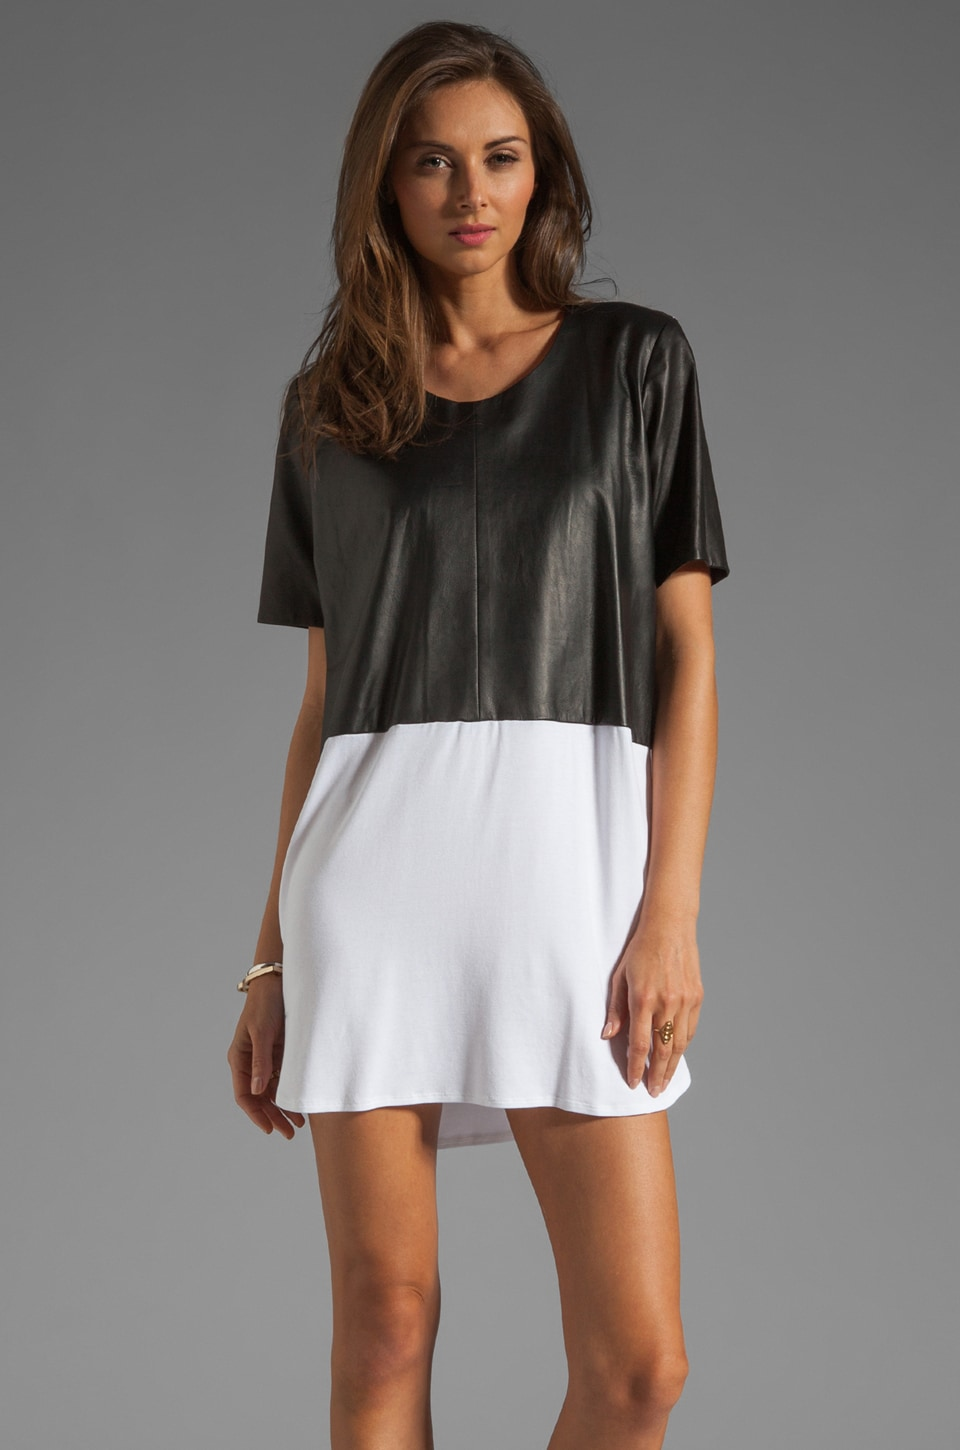 Michelle Mason Leather Front Tee Dress in Black/White